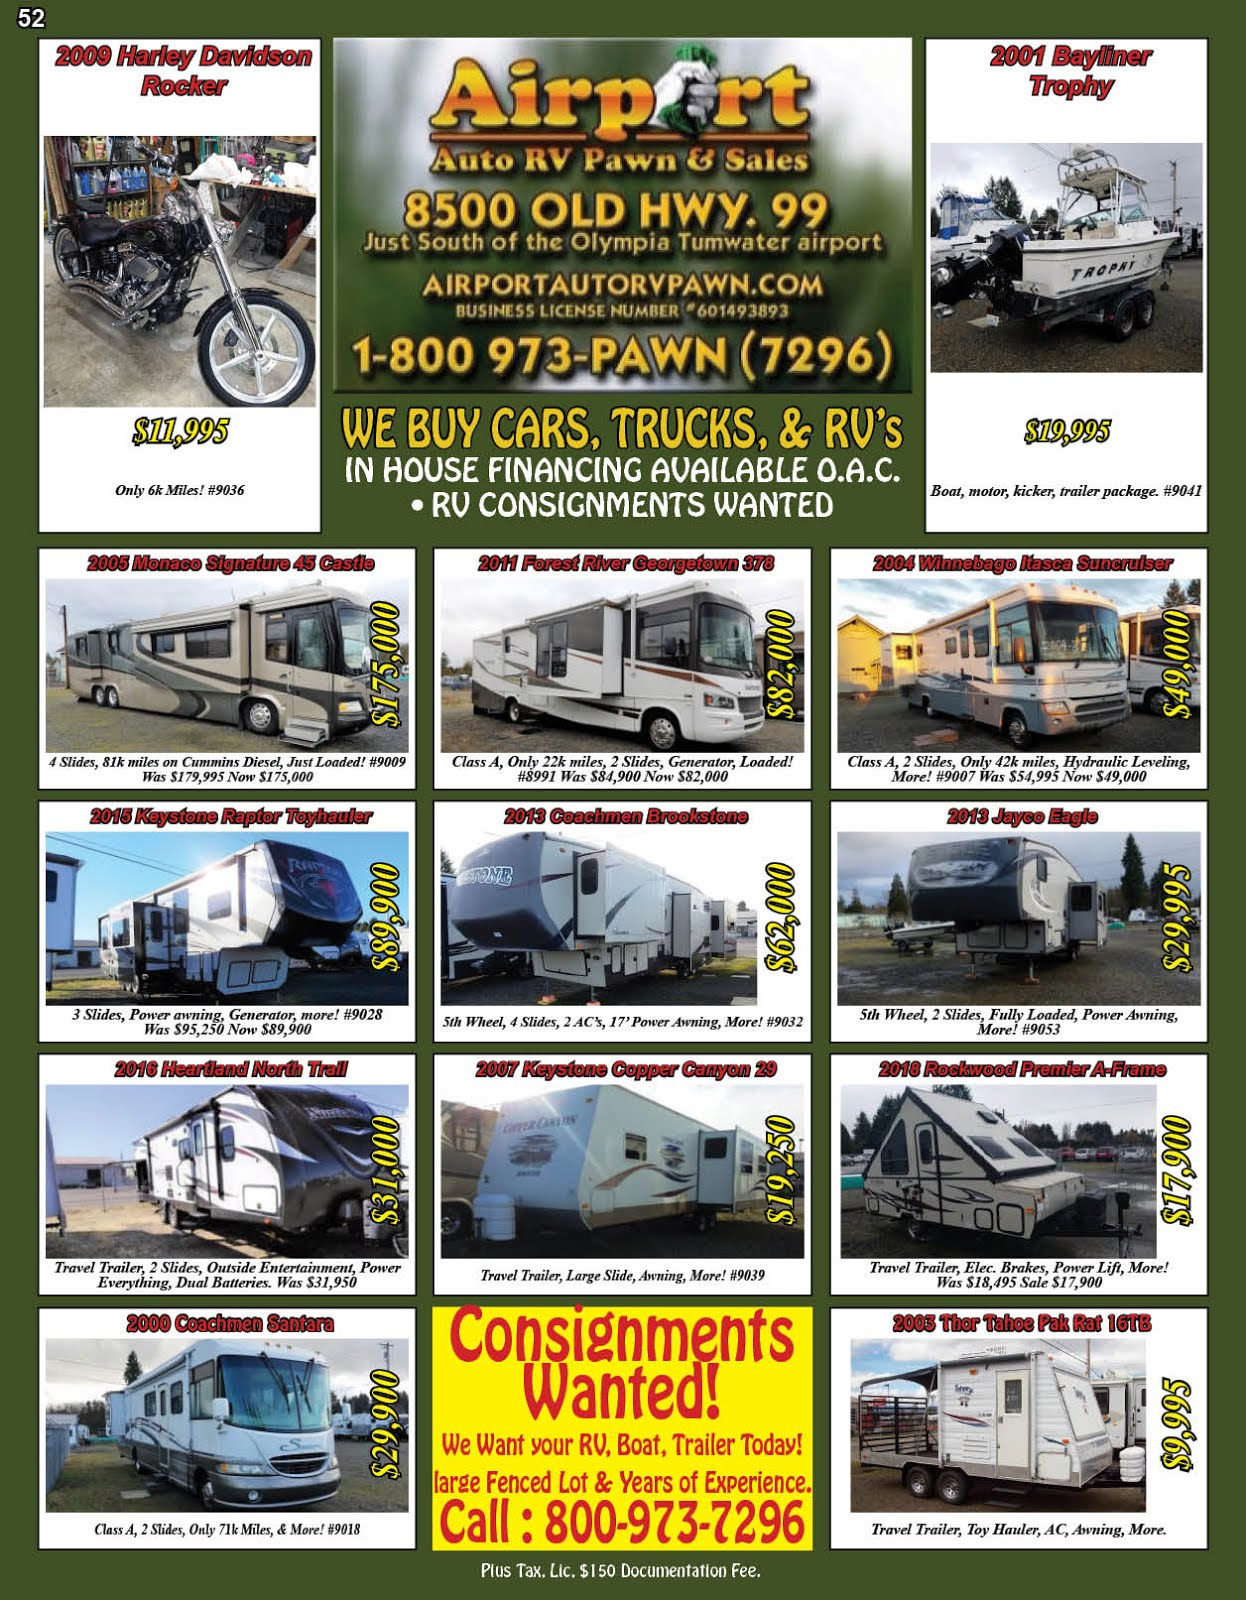 Airport Auto RV Pawn & Sales, RV Consignments Wanted!!